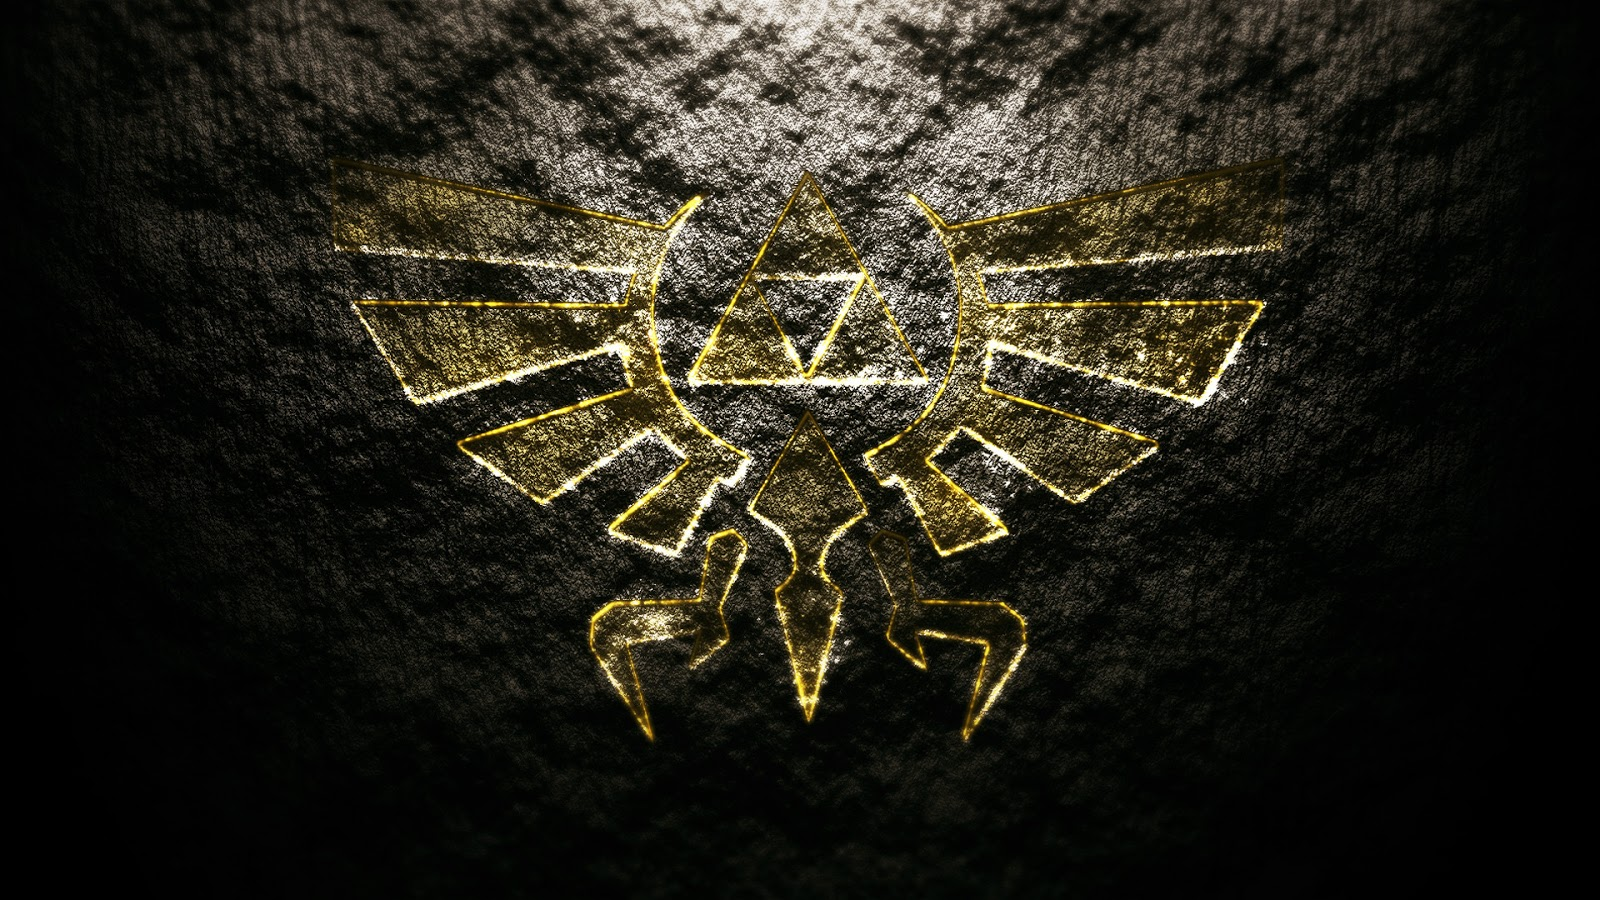 Black and Gold Wallpapers